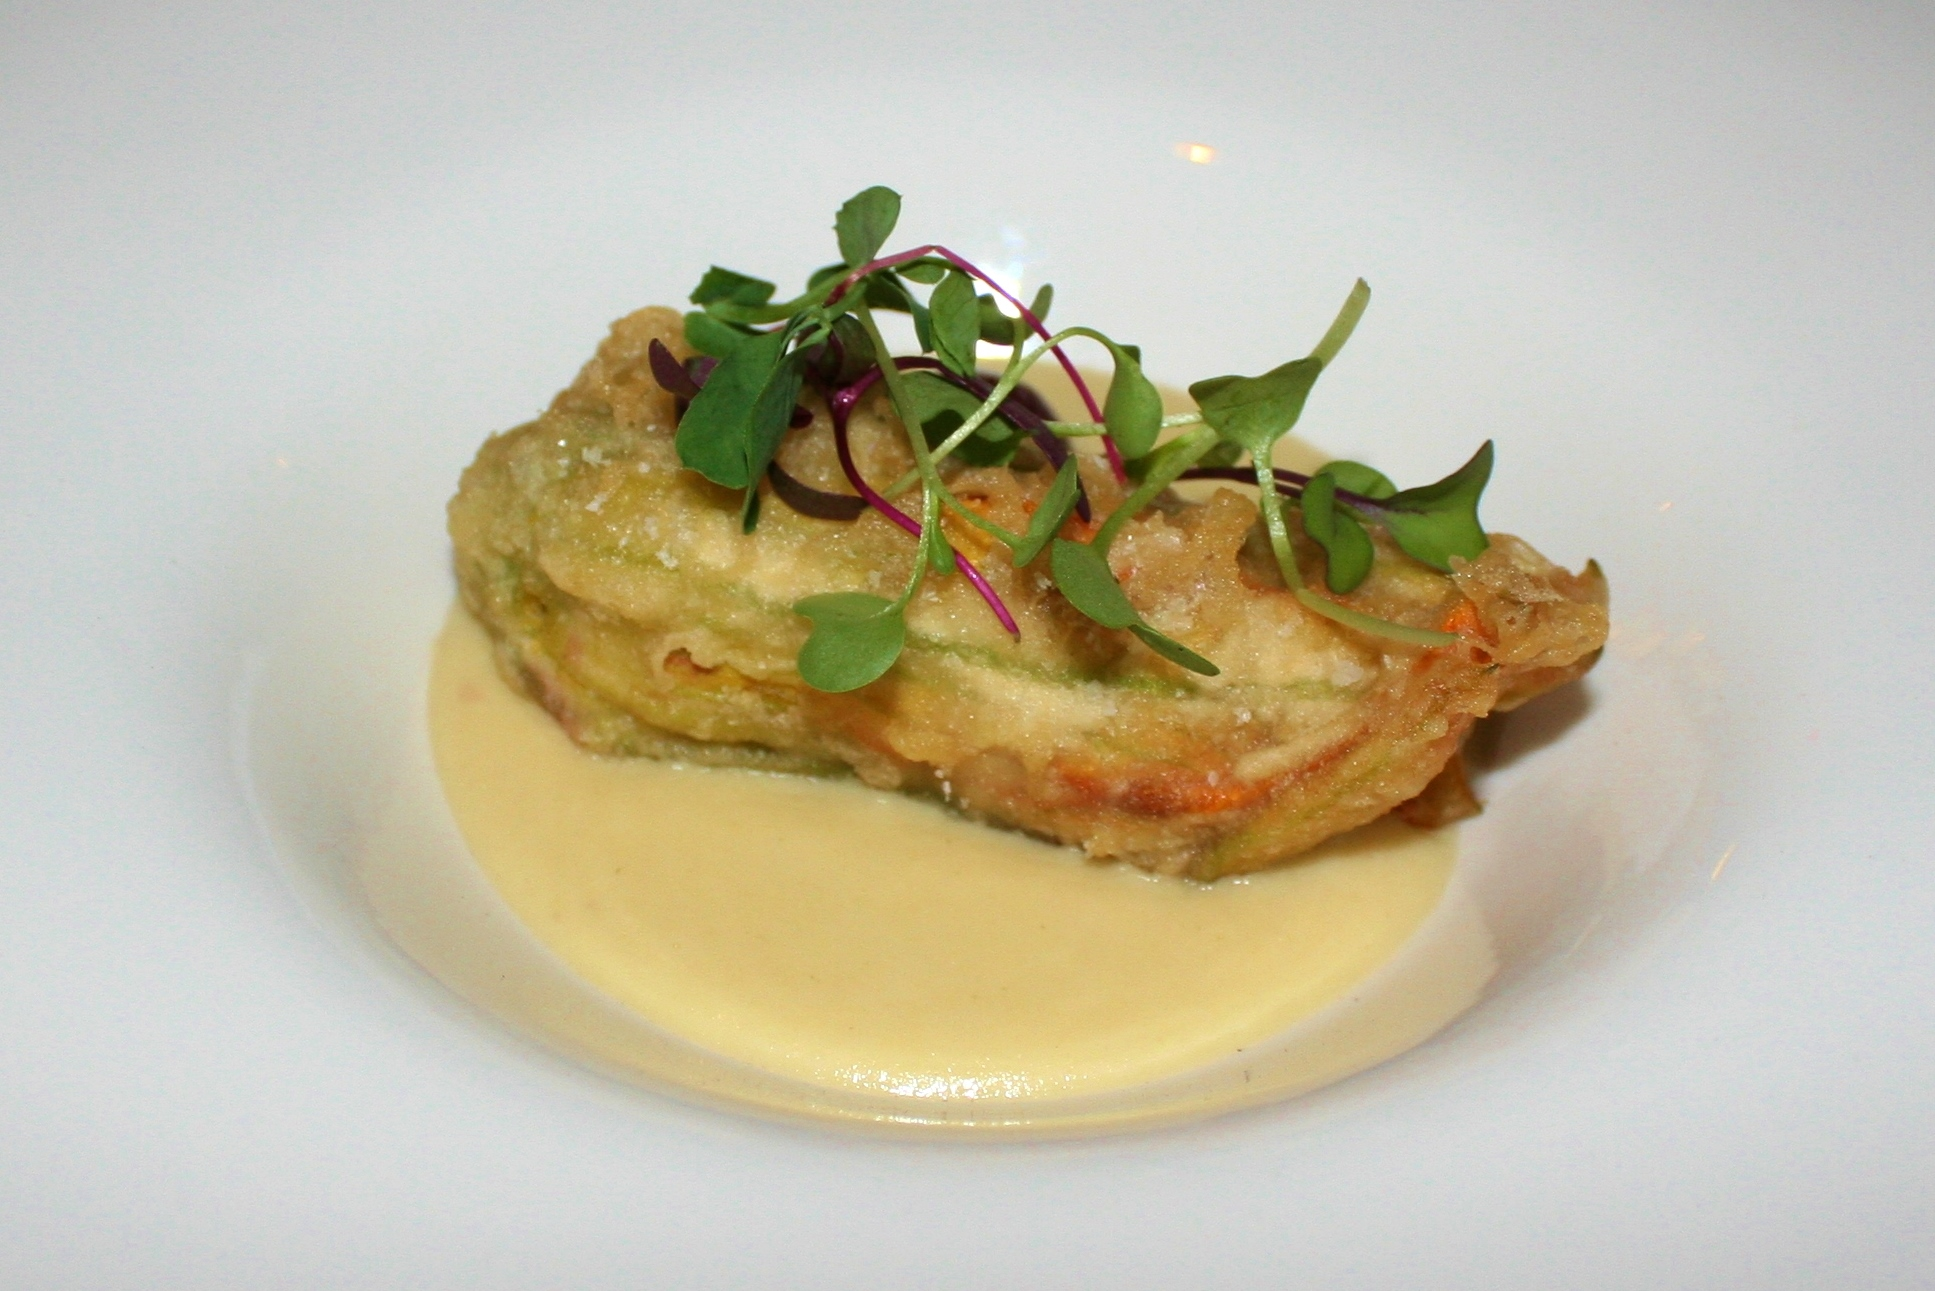 Squash blossom stuffed with mesquite-smoked lobster on roasted corn puree at Sel in Scottsdale